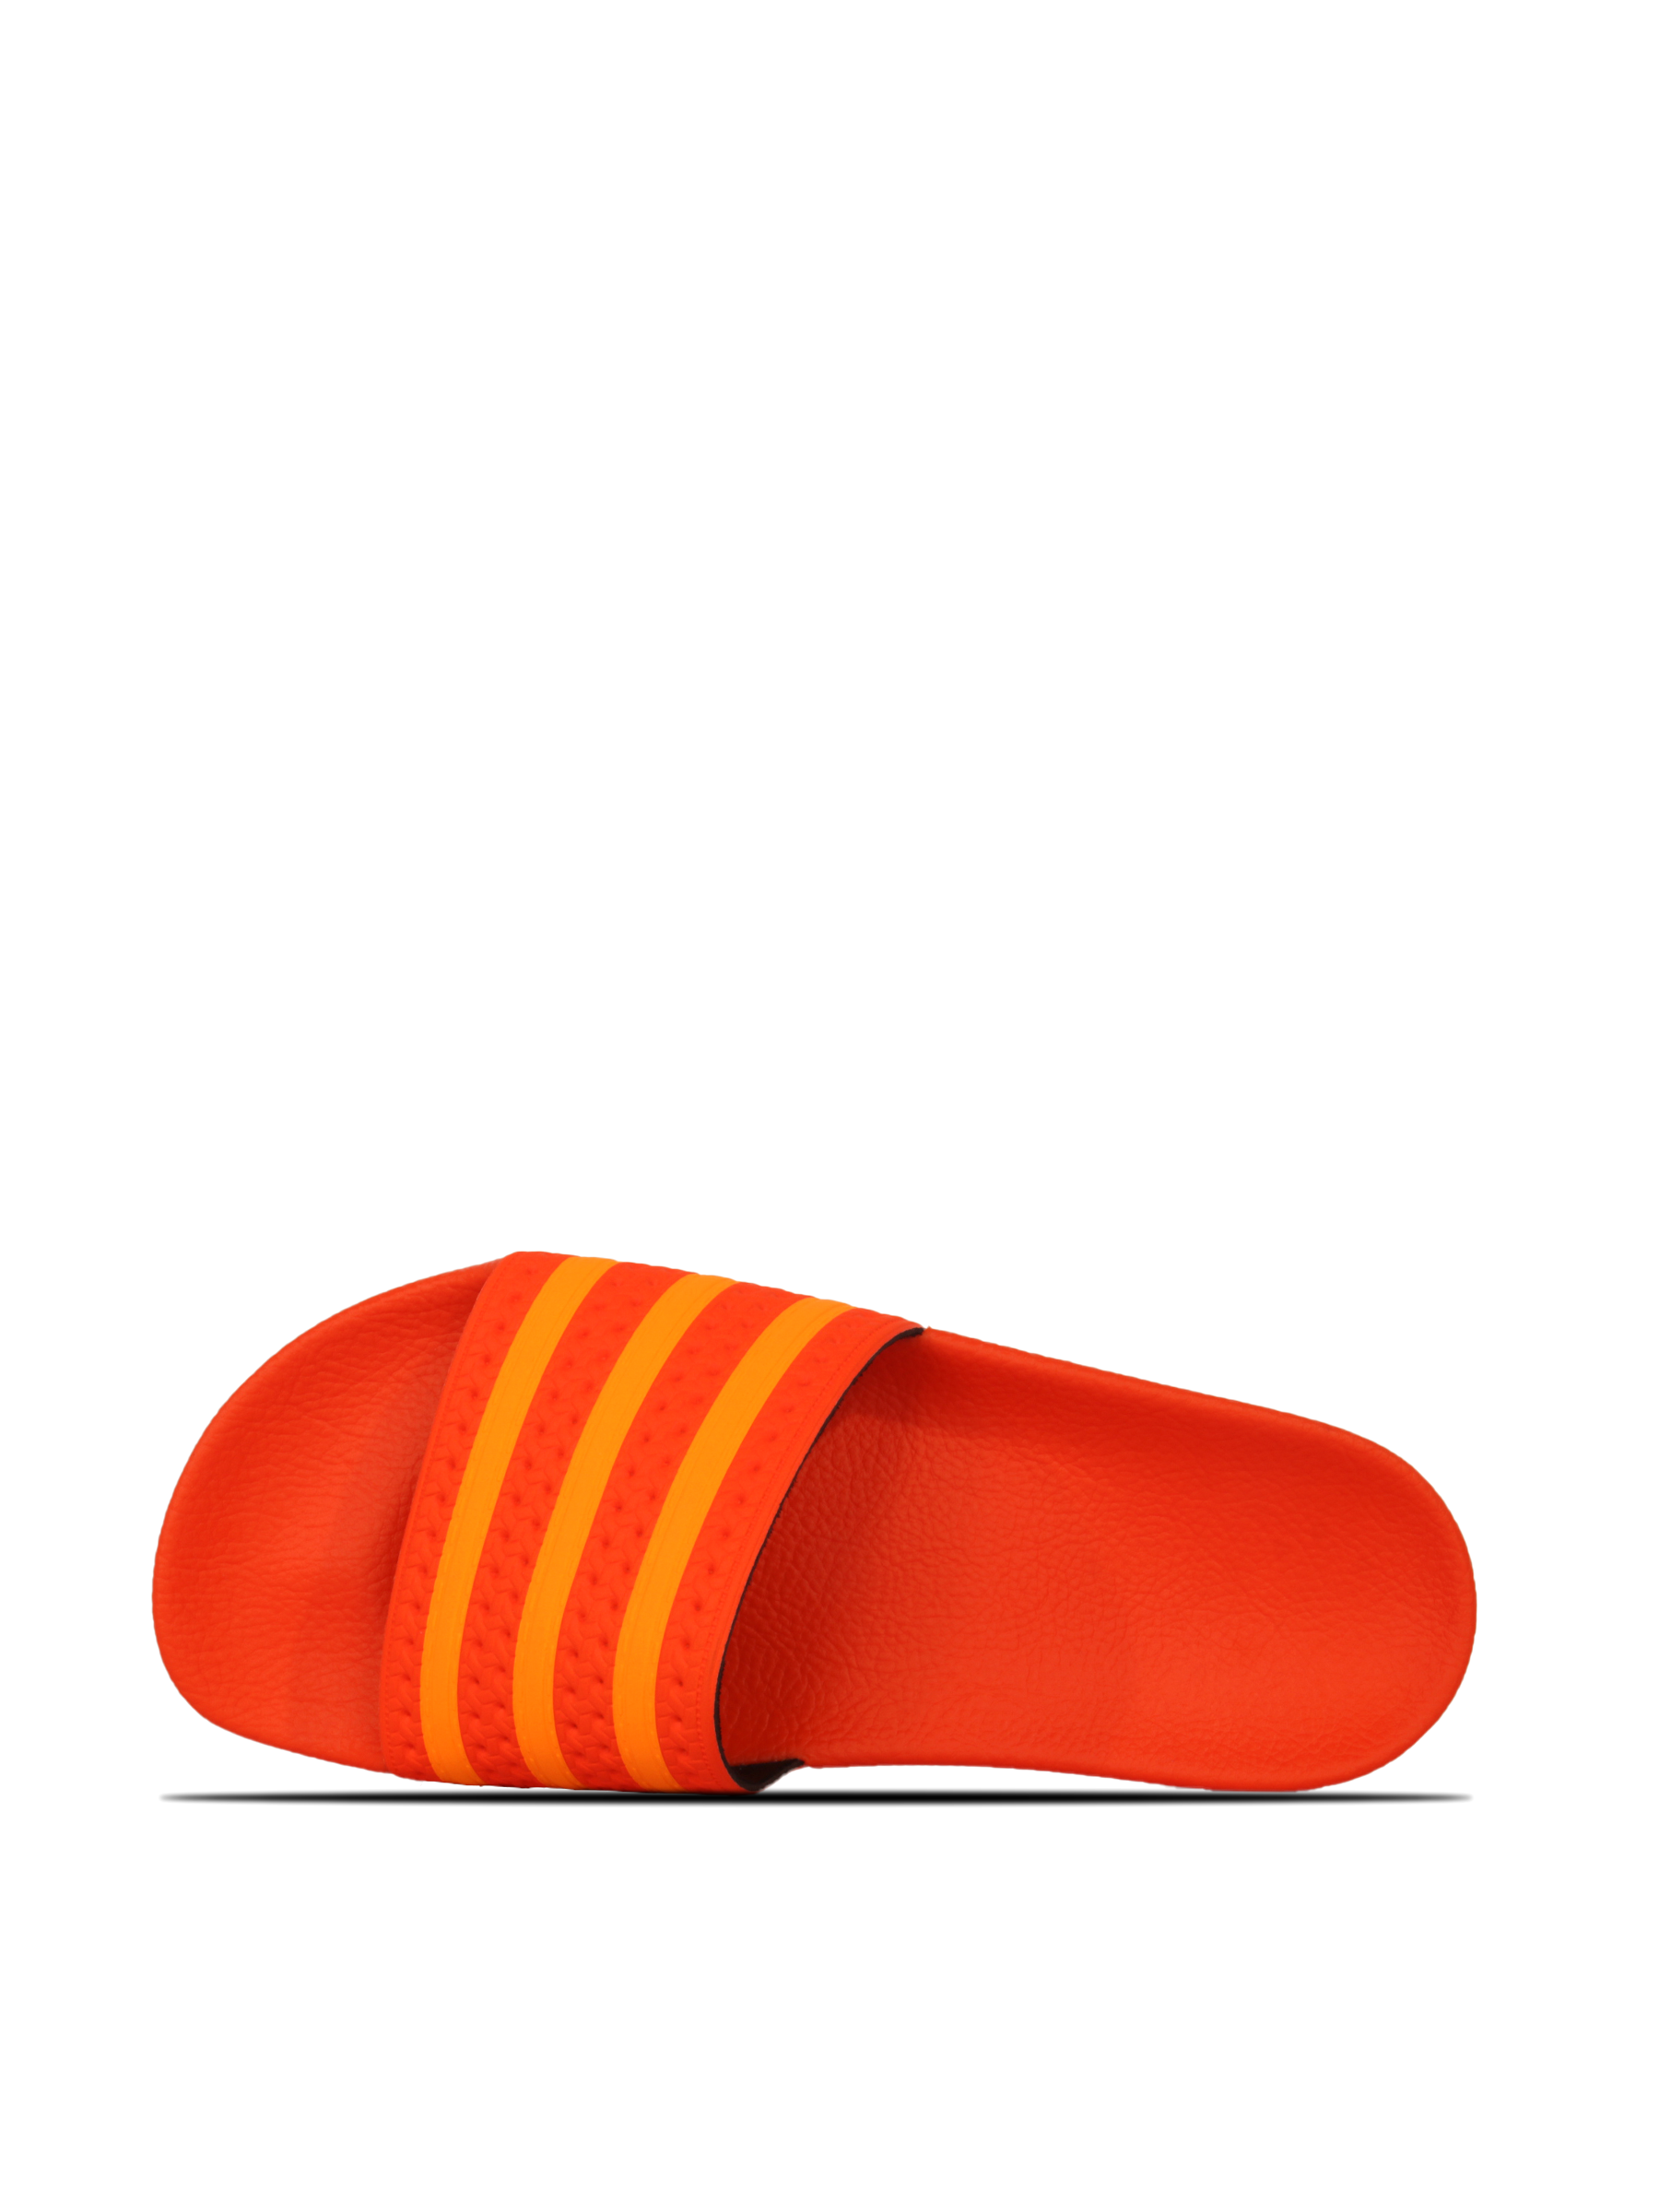 111055571_adidas_EE6168_d.png